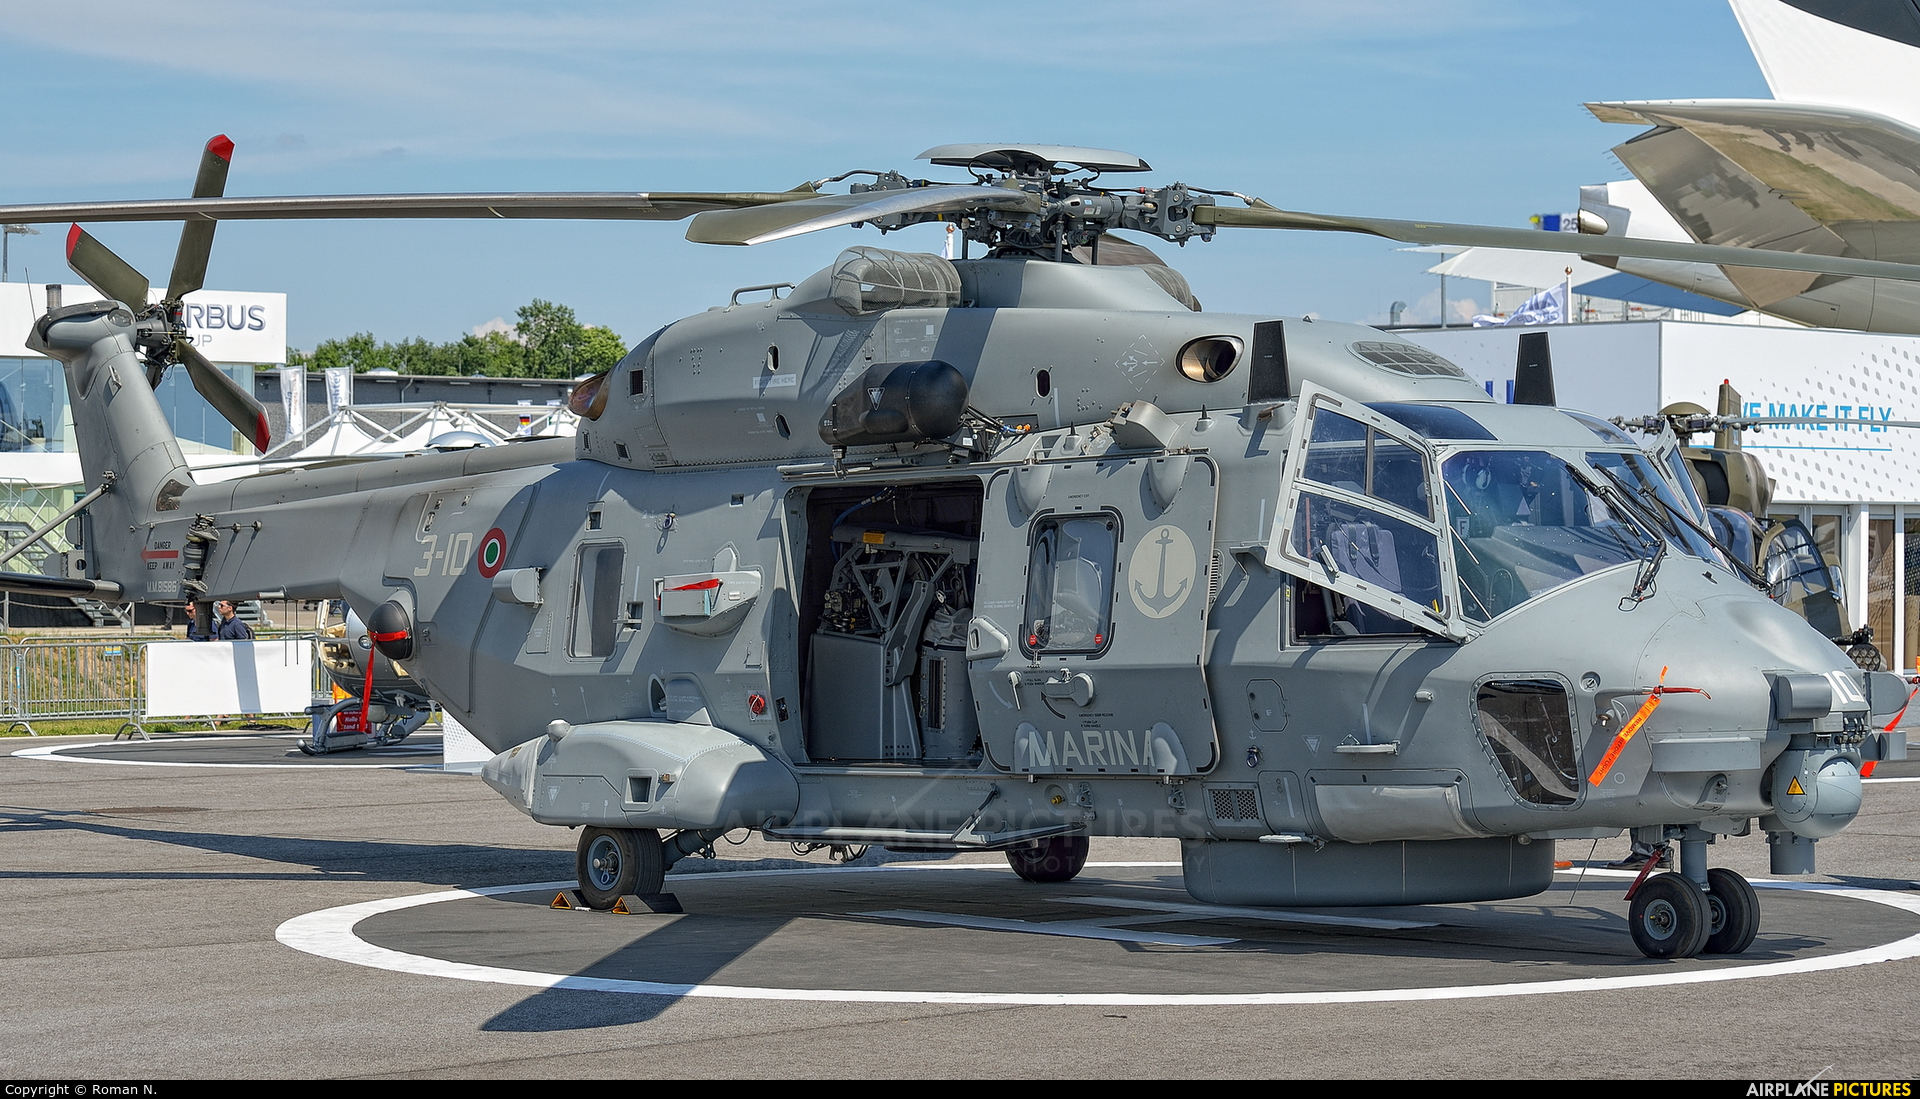 Elicottero 90 : M italy navy nh industries nfh at berlin